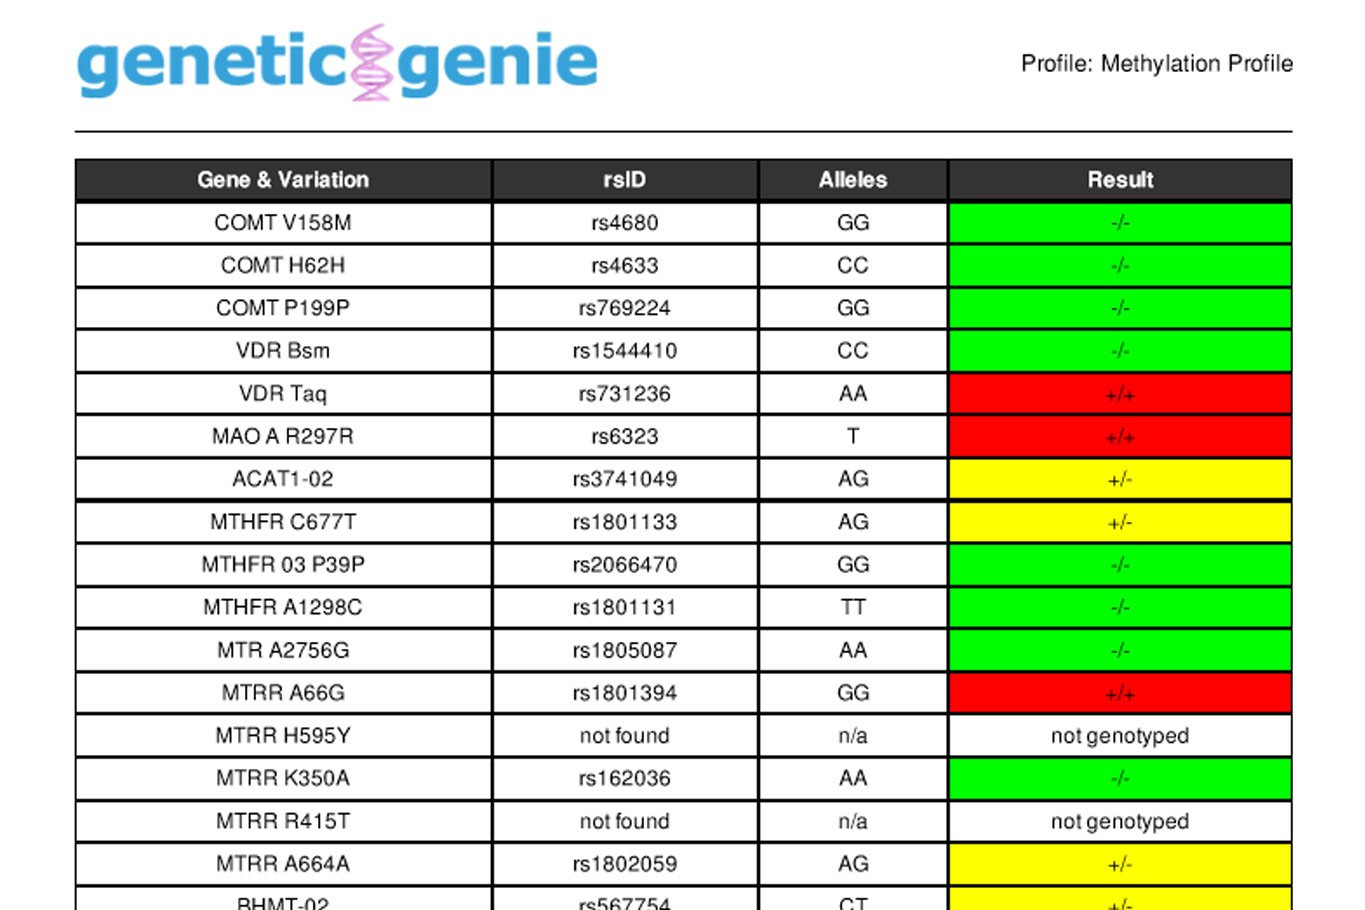 Genetic Genie Methylation Profile Test Results